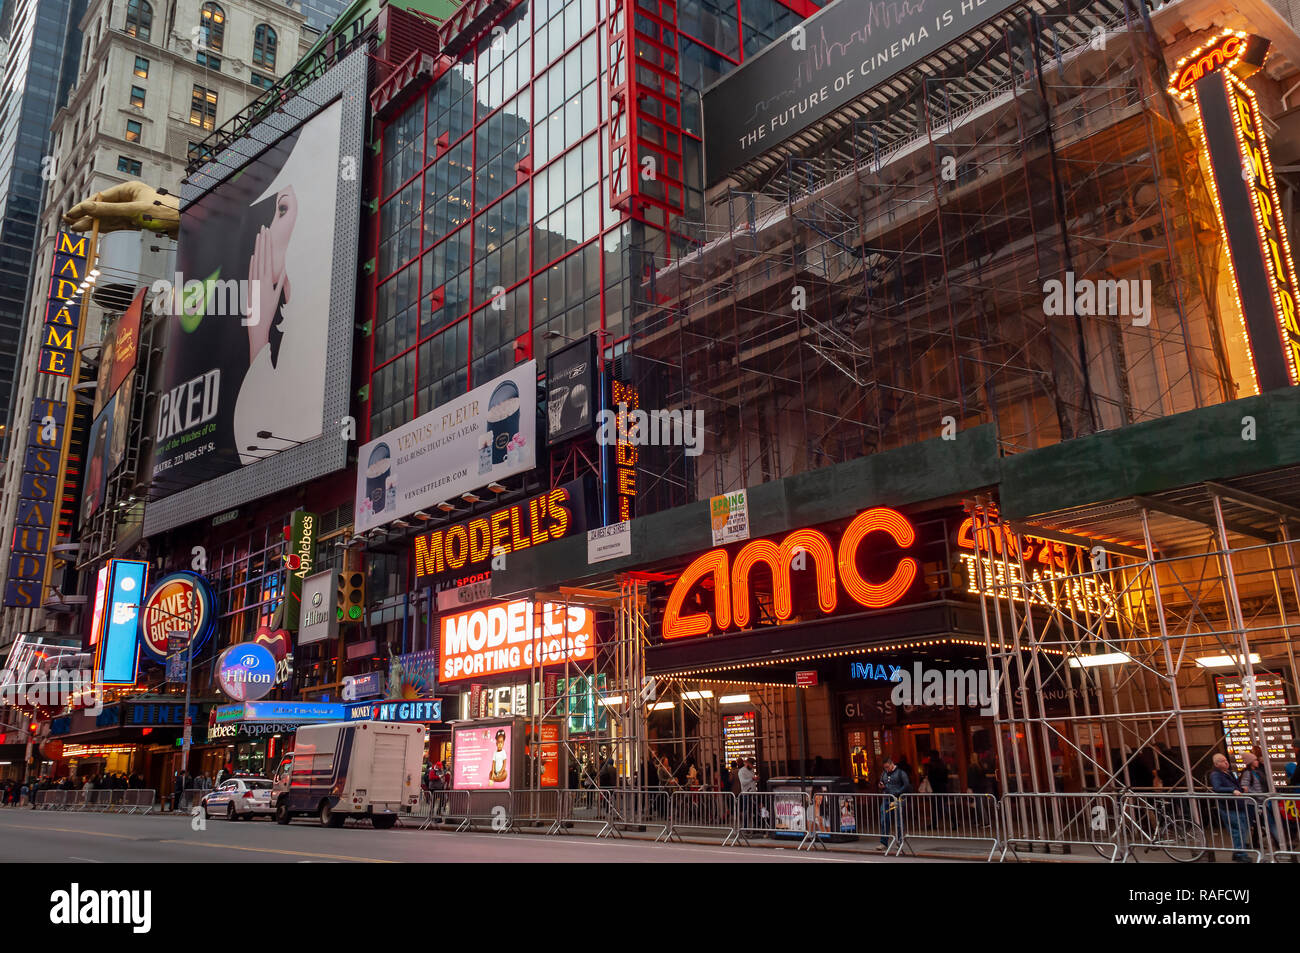 The AMC 25 Theatre in Times Square in New York on Monday, December 24, 2018. Hollywood has already reported a blockbuster year with over $11.83 billion in ticket sales, citing multiple hits, and there is still the lucrative Christmas week to go to finish off the year. (© Richard B. Levine) Stock Photo